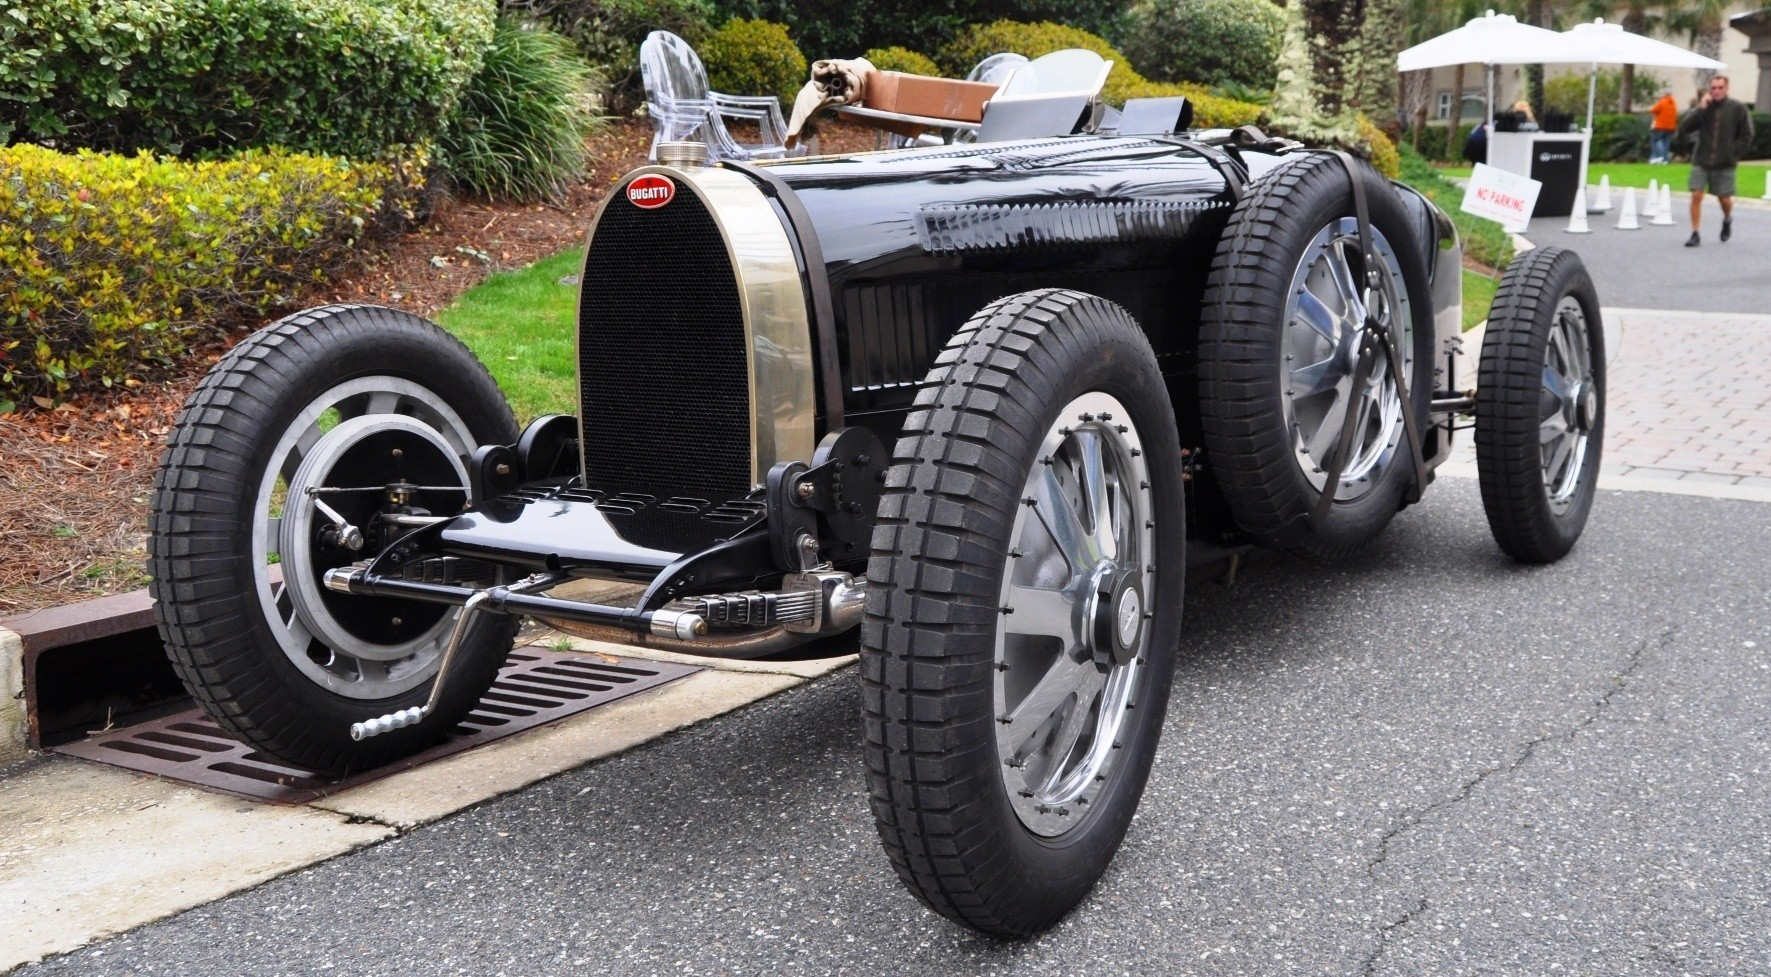 PurSang Argentina Shows Innovative Marketing with Street-Parked 1920s Bugatti GP Car5